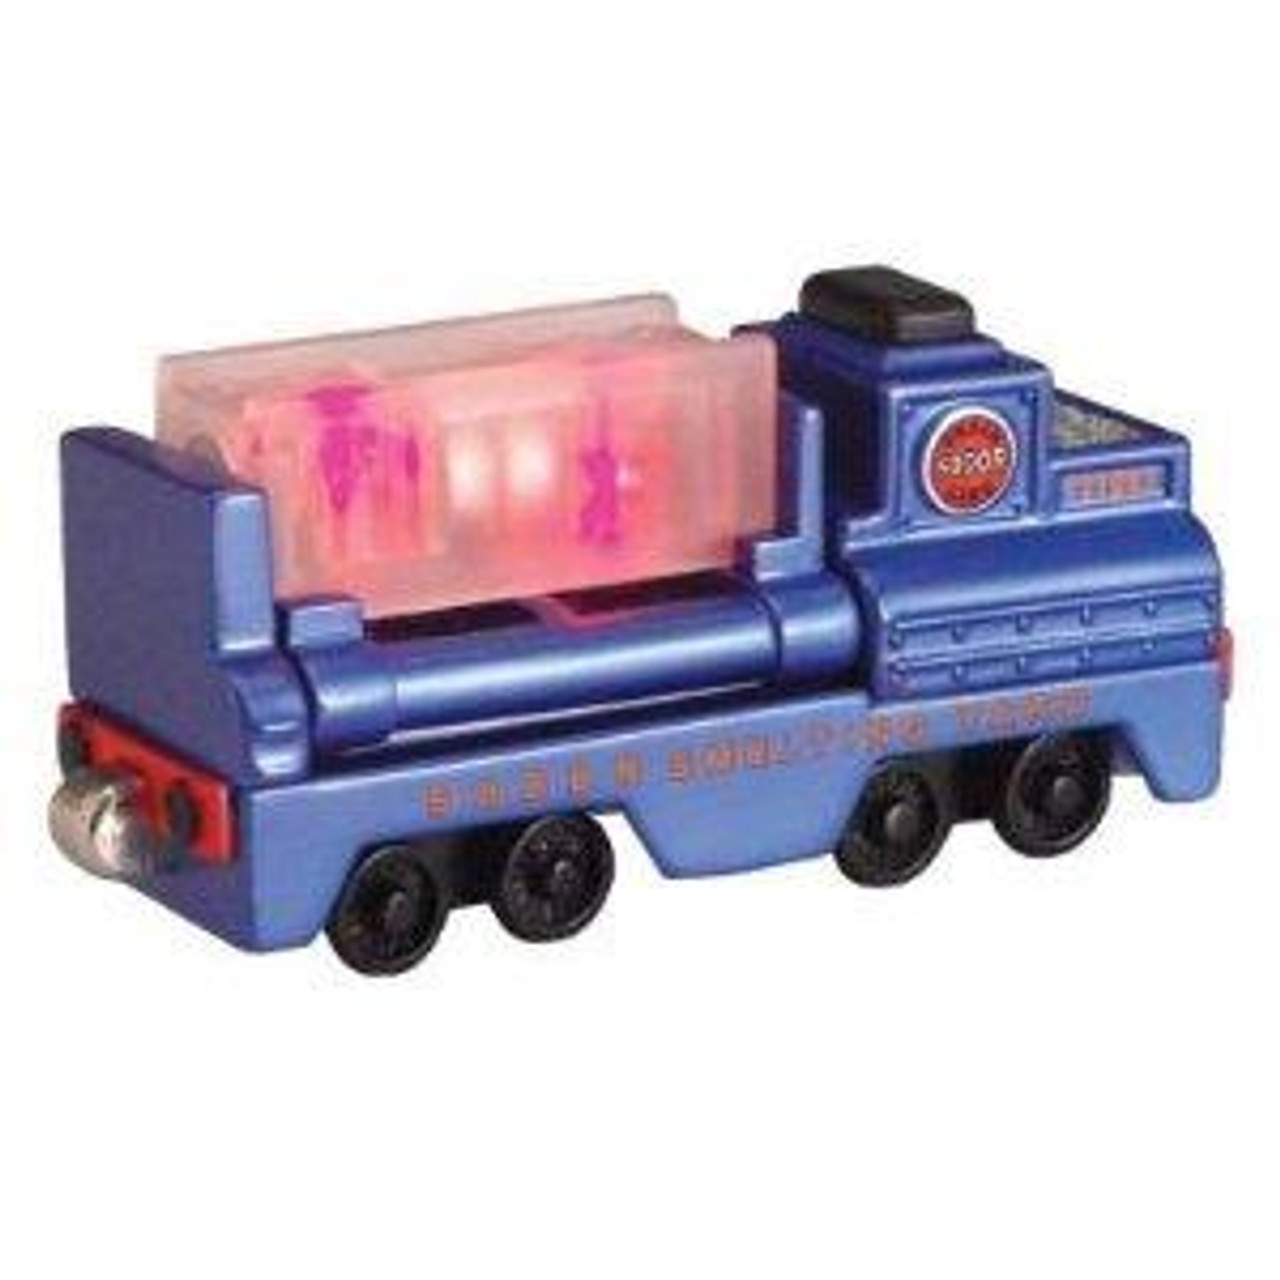 Thomas & Friends Wooden Railway Smelter Shed Cargo Car Diecast Train